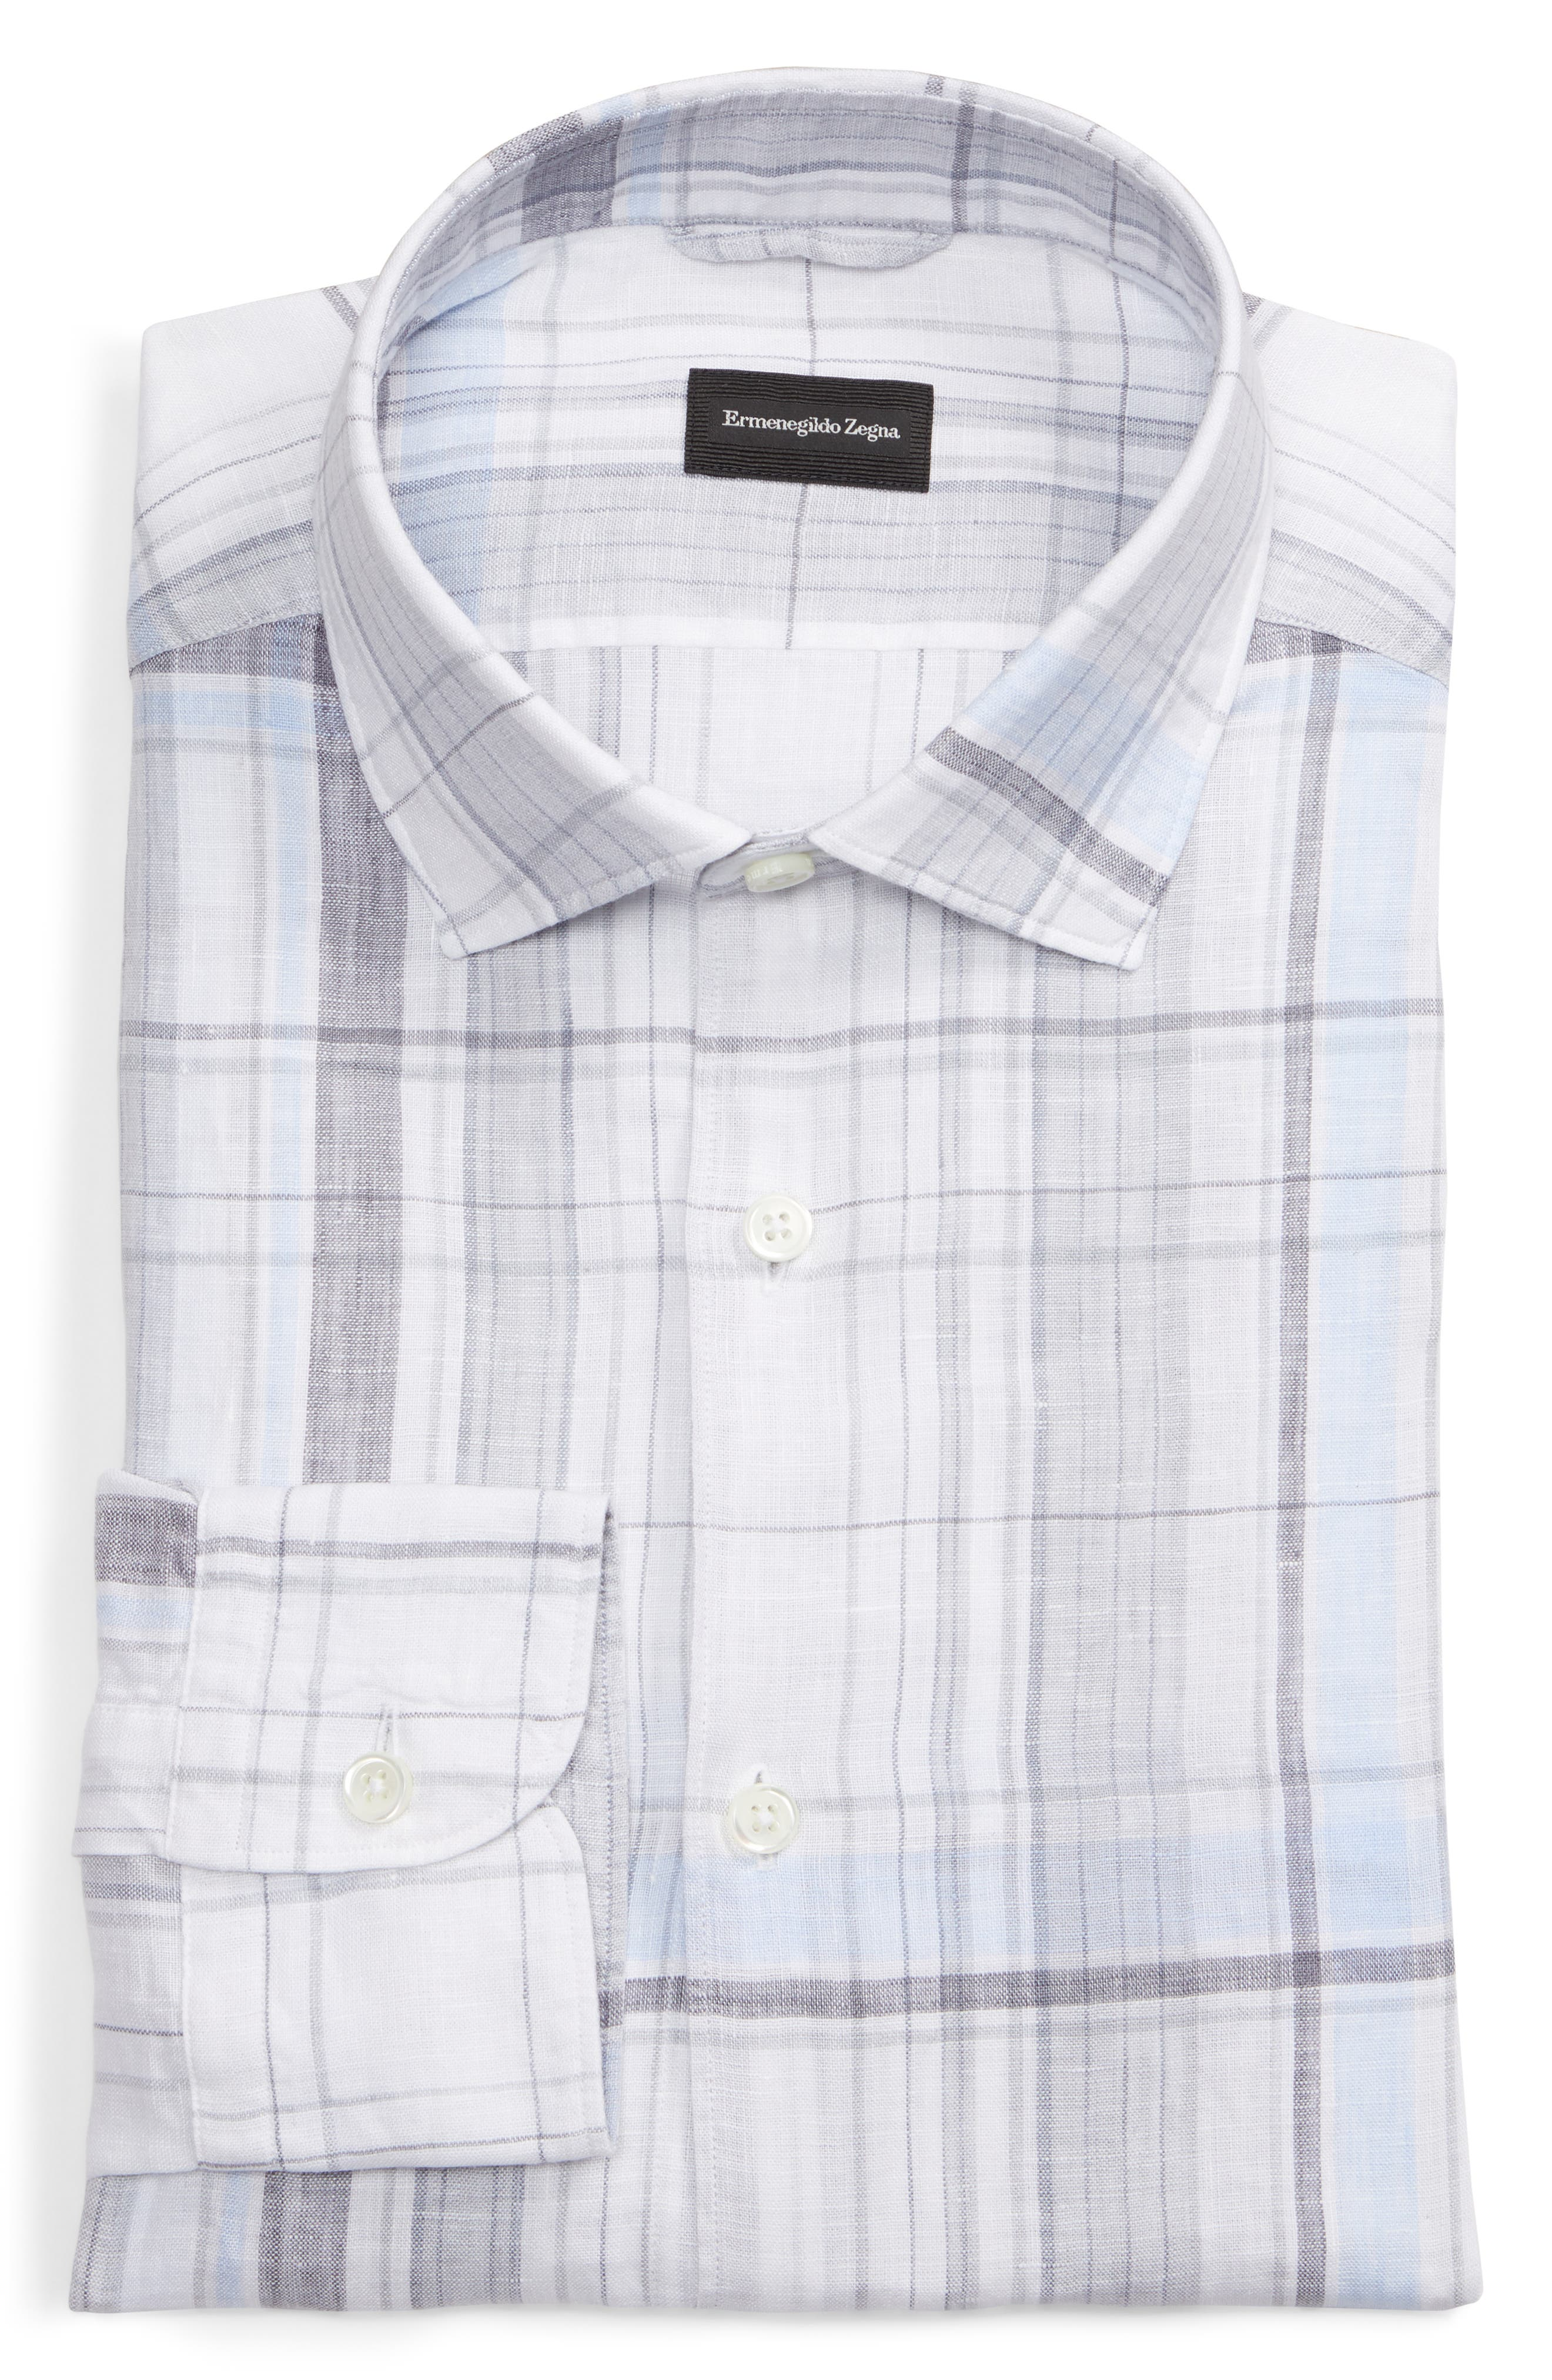 ERMENEGILDO ZEGNA, Regular Fit Plaid Linen Sport Shirt, Alternate thumbnail 5, color, BLUE